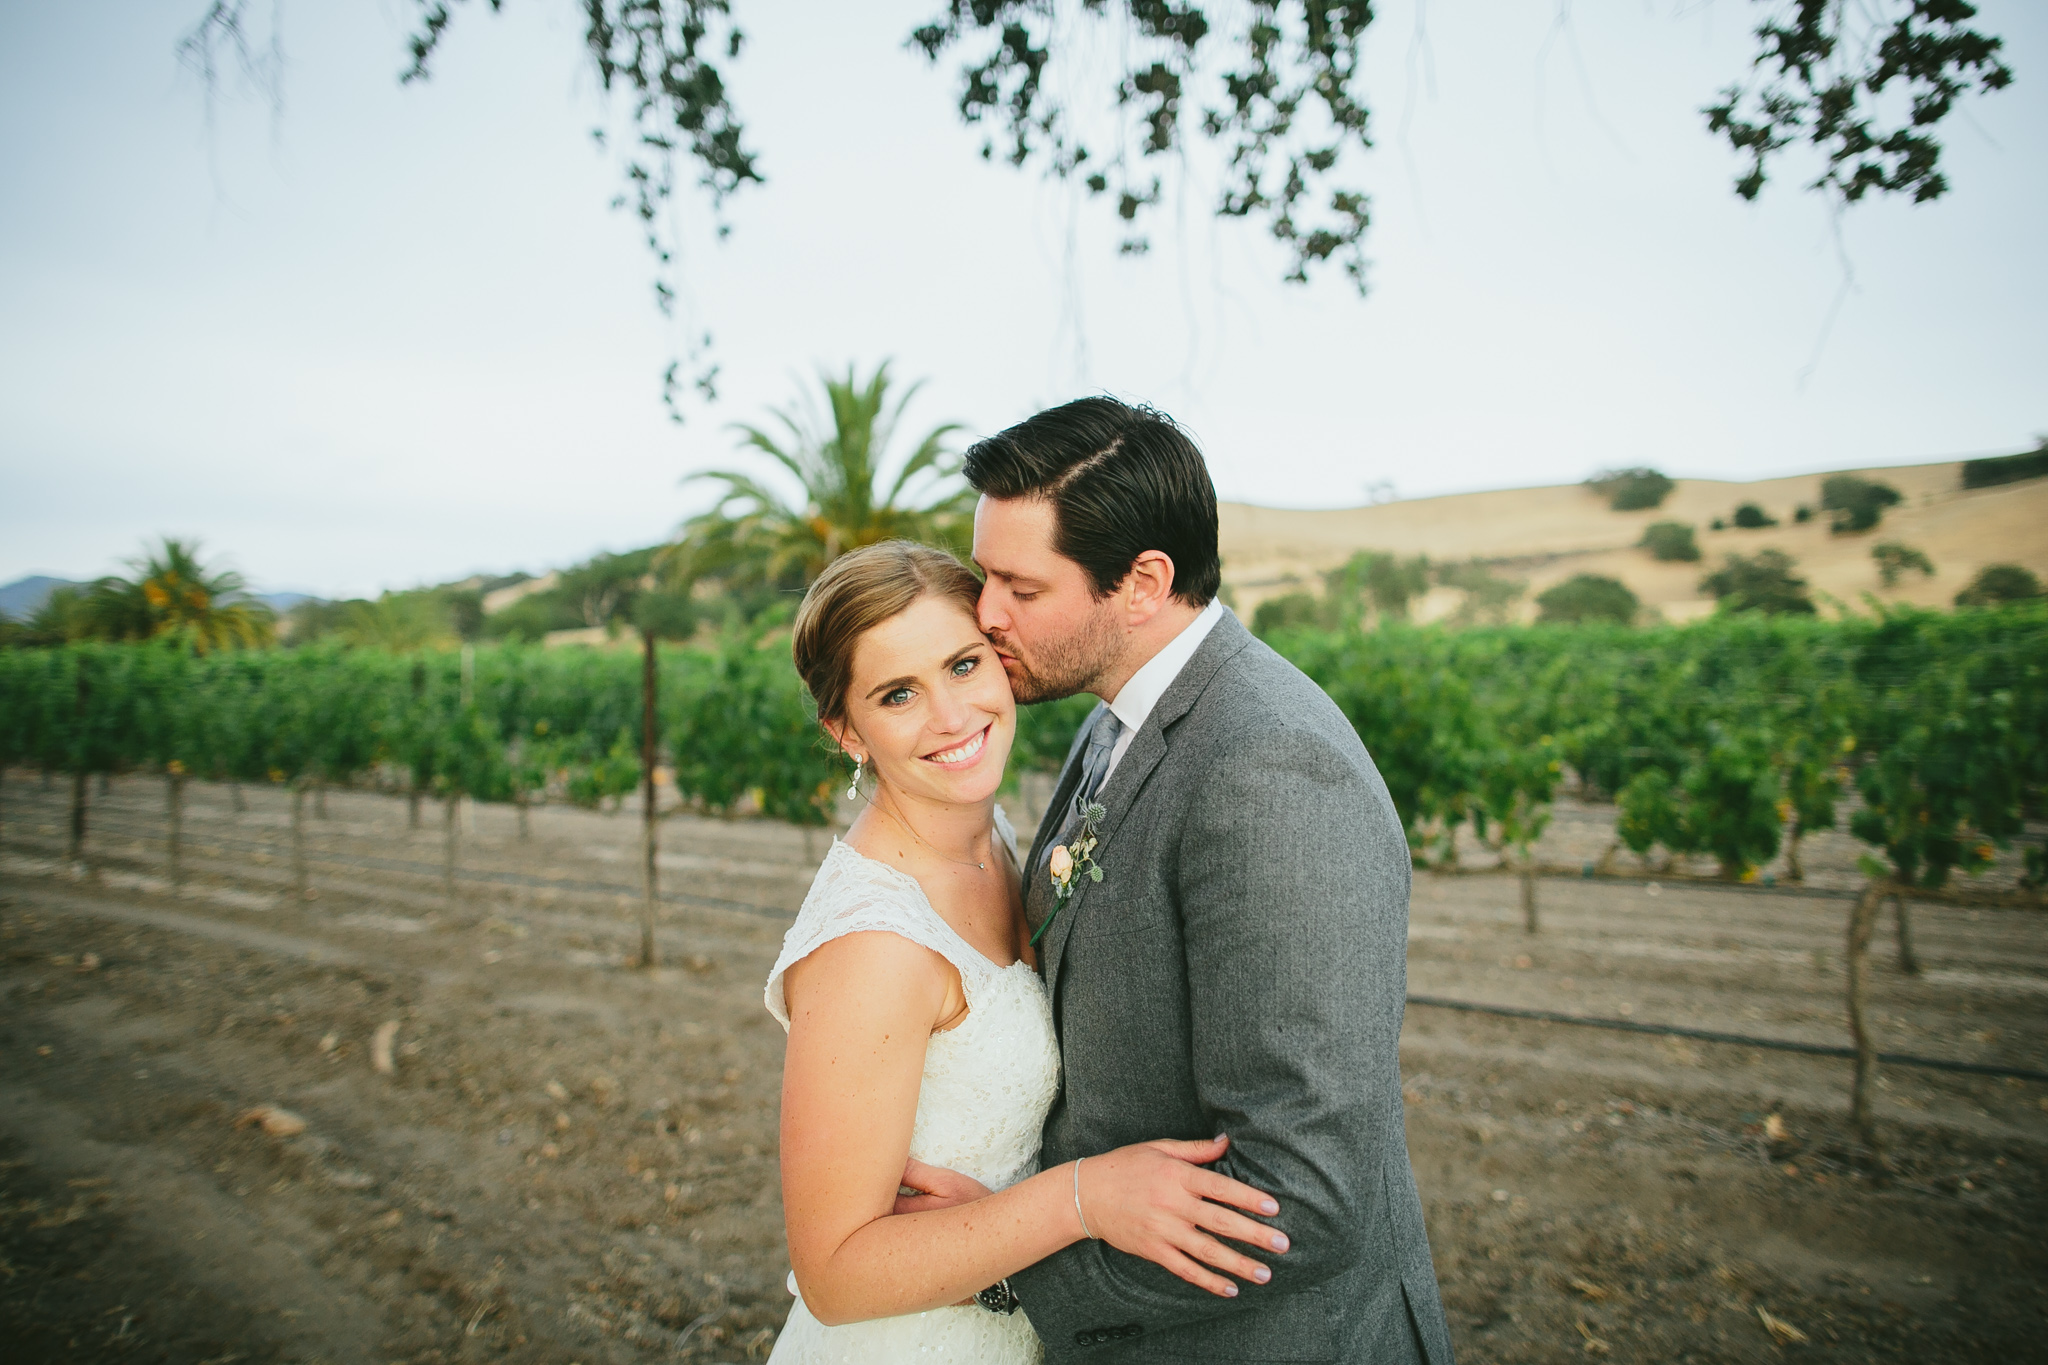 whitney+parker-WEB_BLOG-129